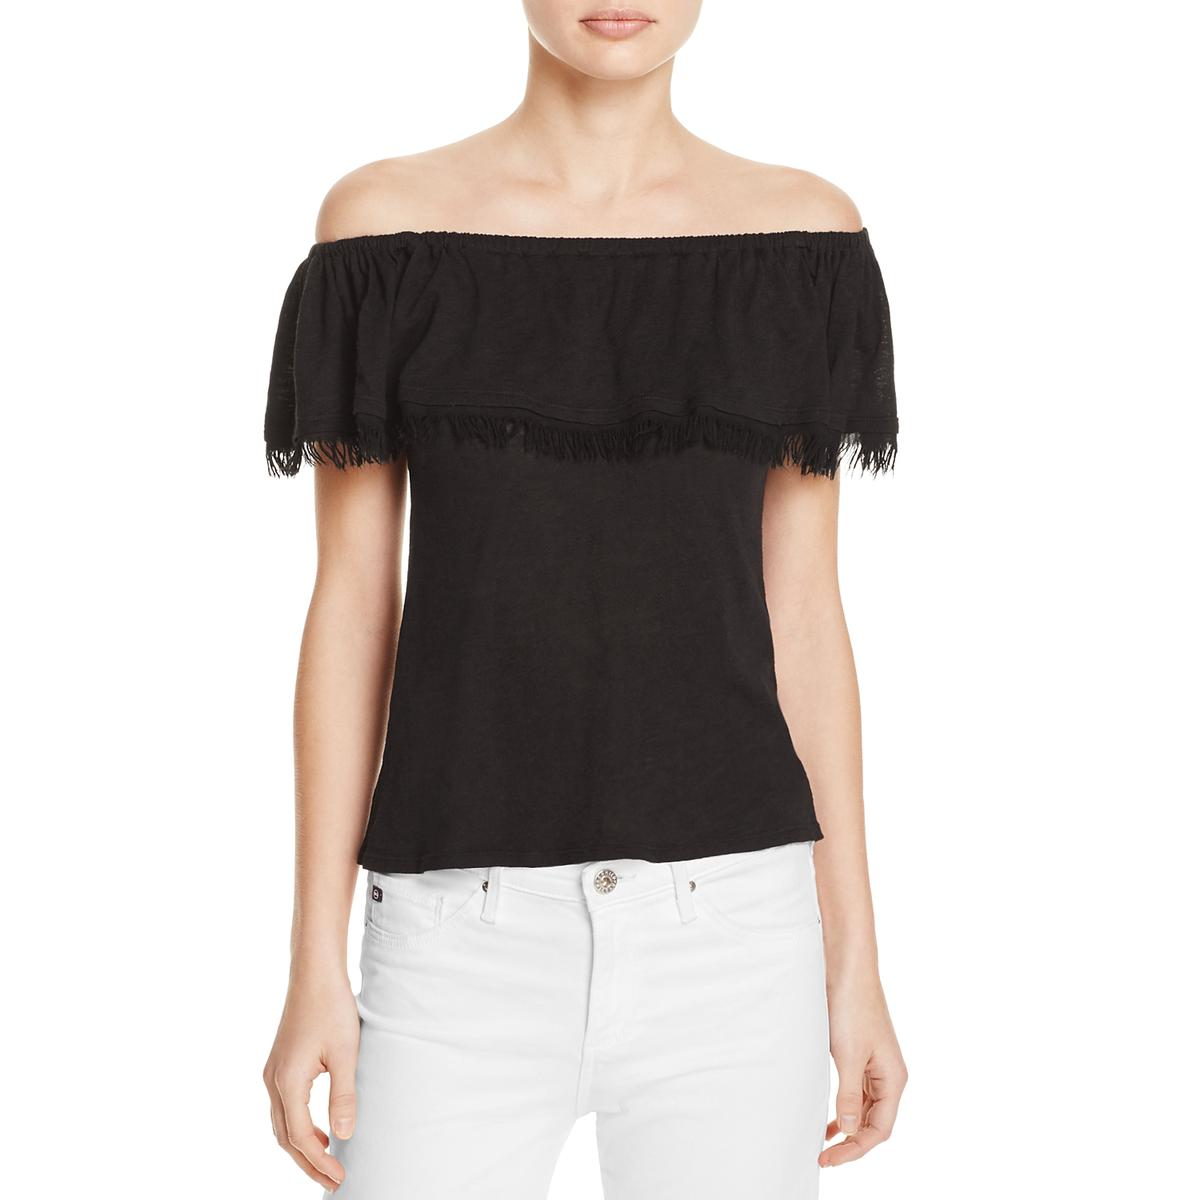 5cb1b8bf47 Details about Splendid Womens Off-The Shoulder Fringe Ruffled Pullover Top  Blouse BHFO 3651